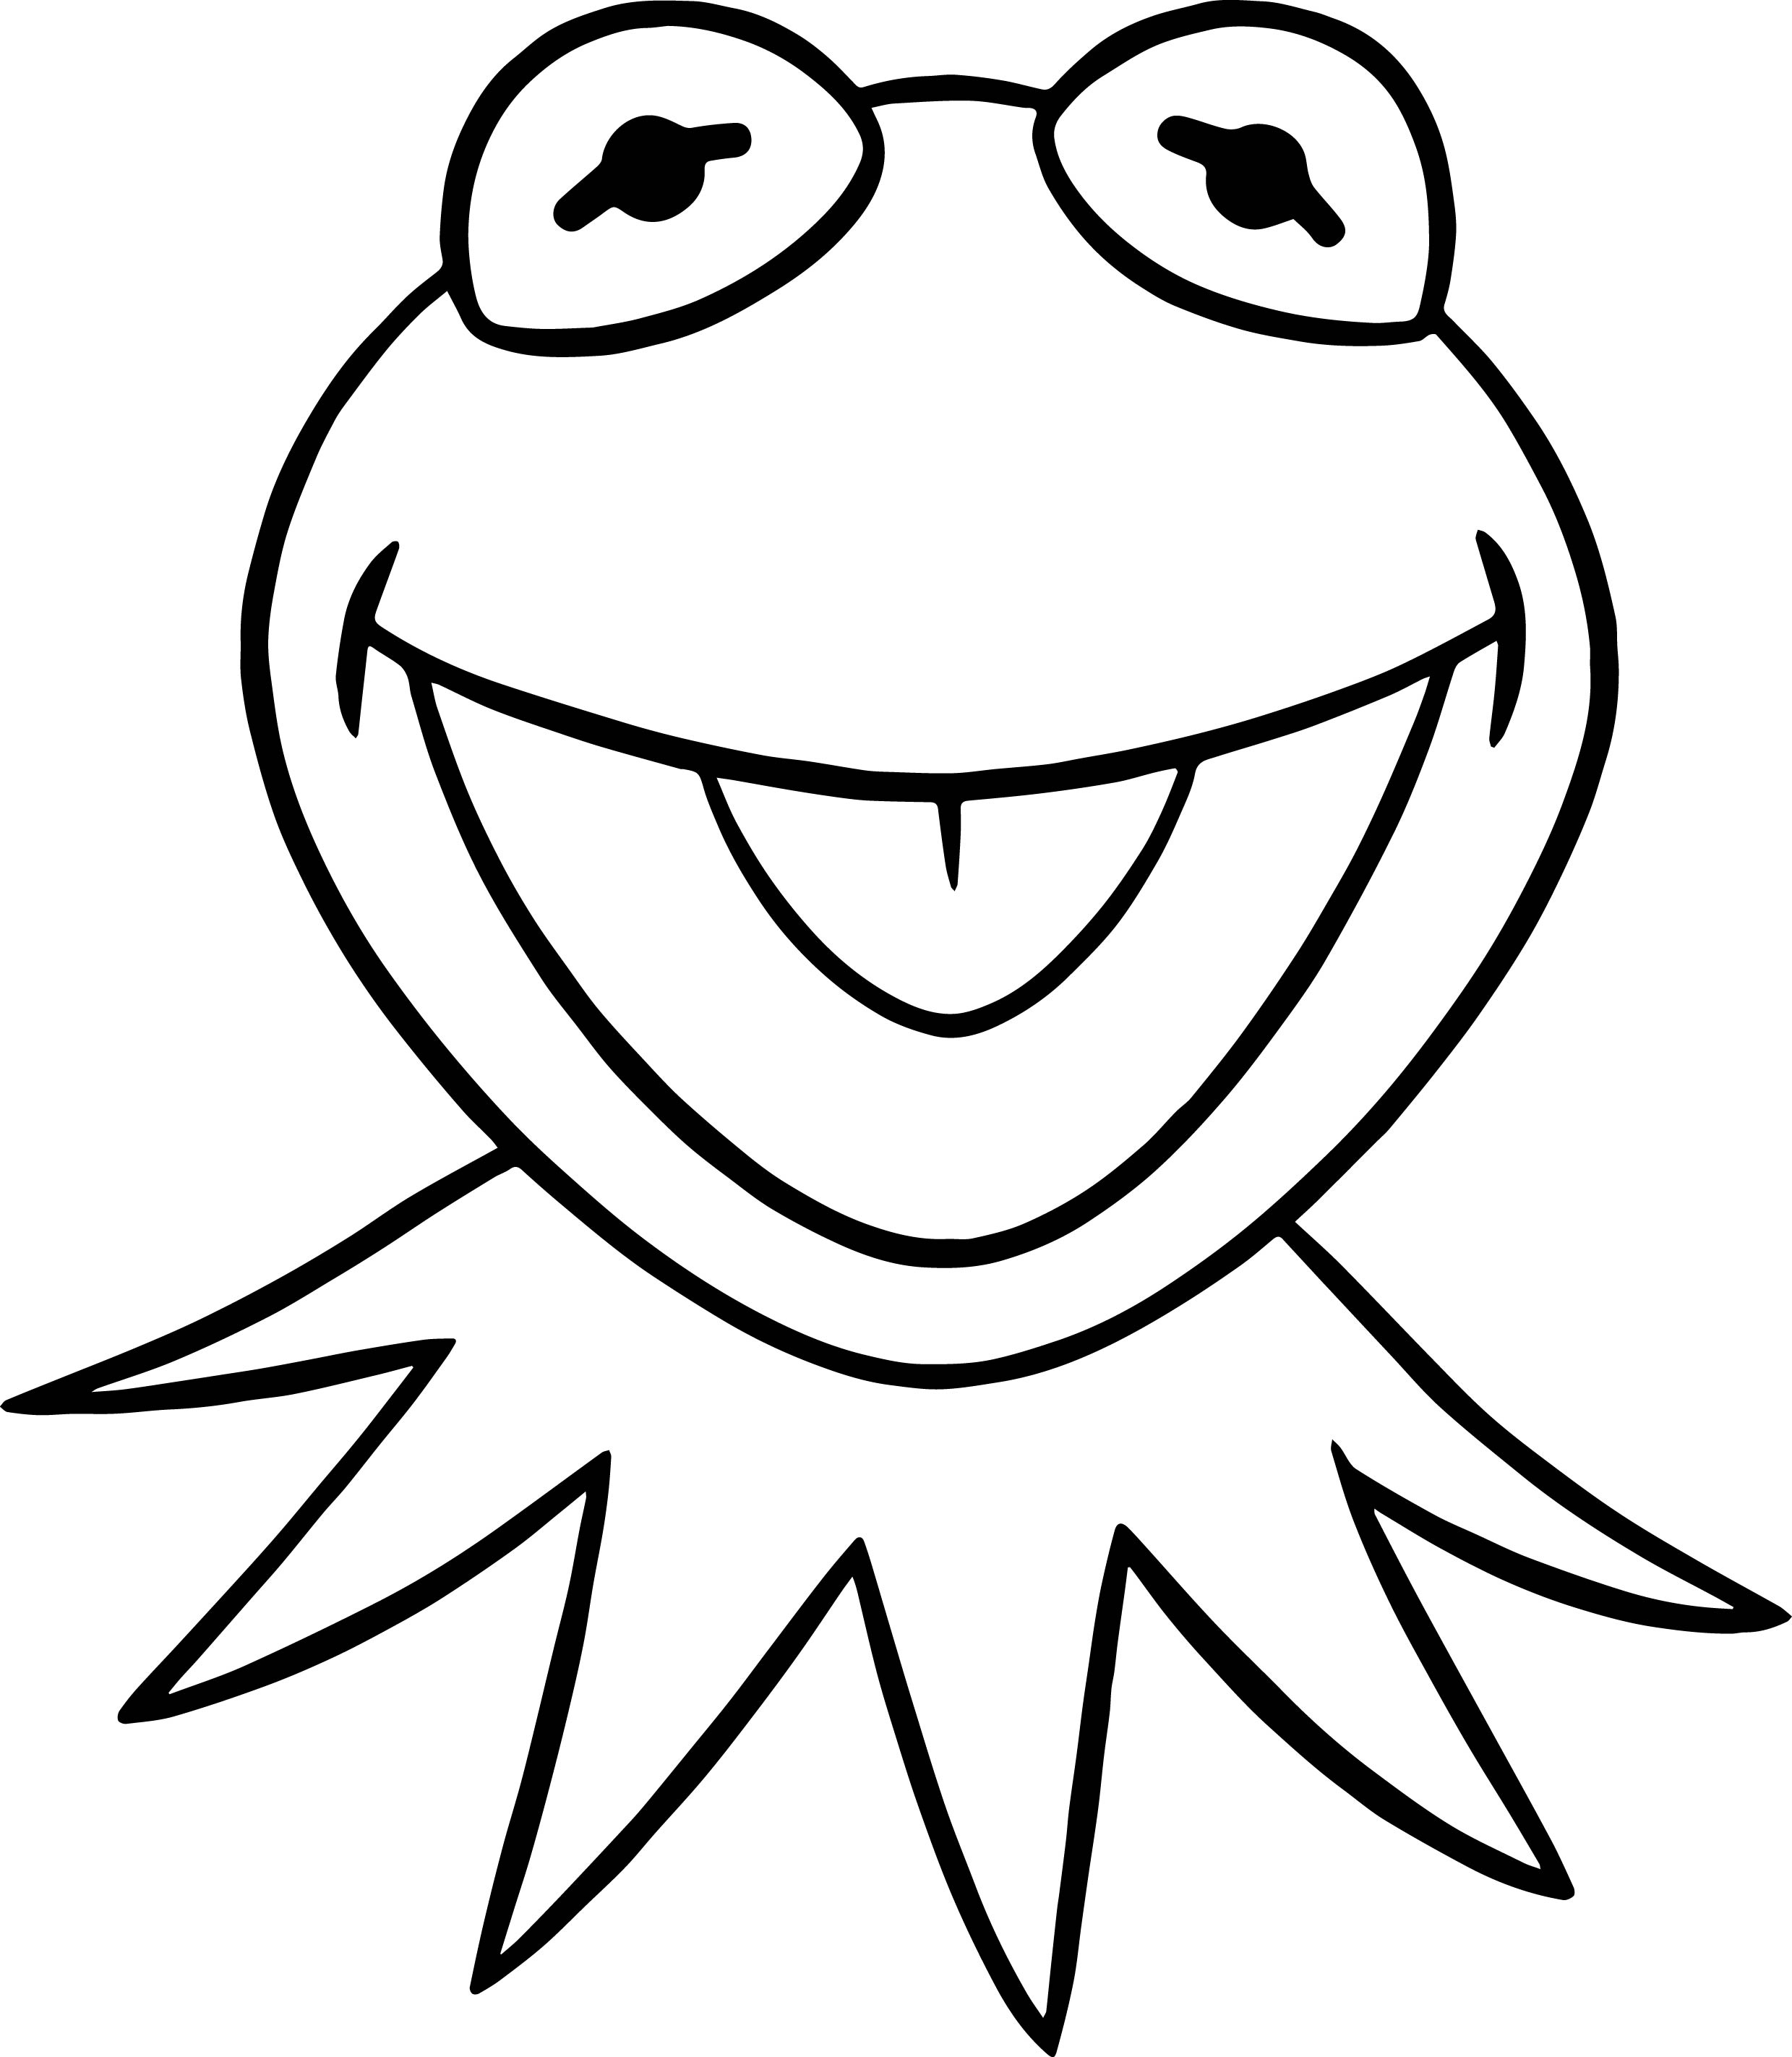 muppets coloring pages - muppets kermit happy frog coloring pages